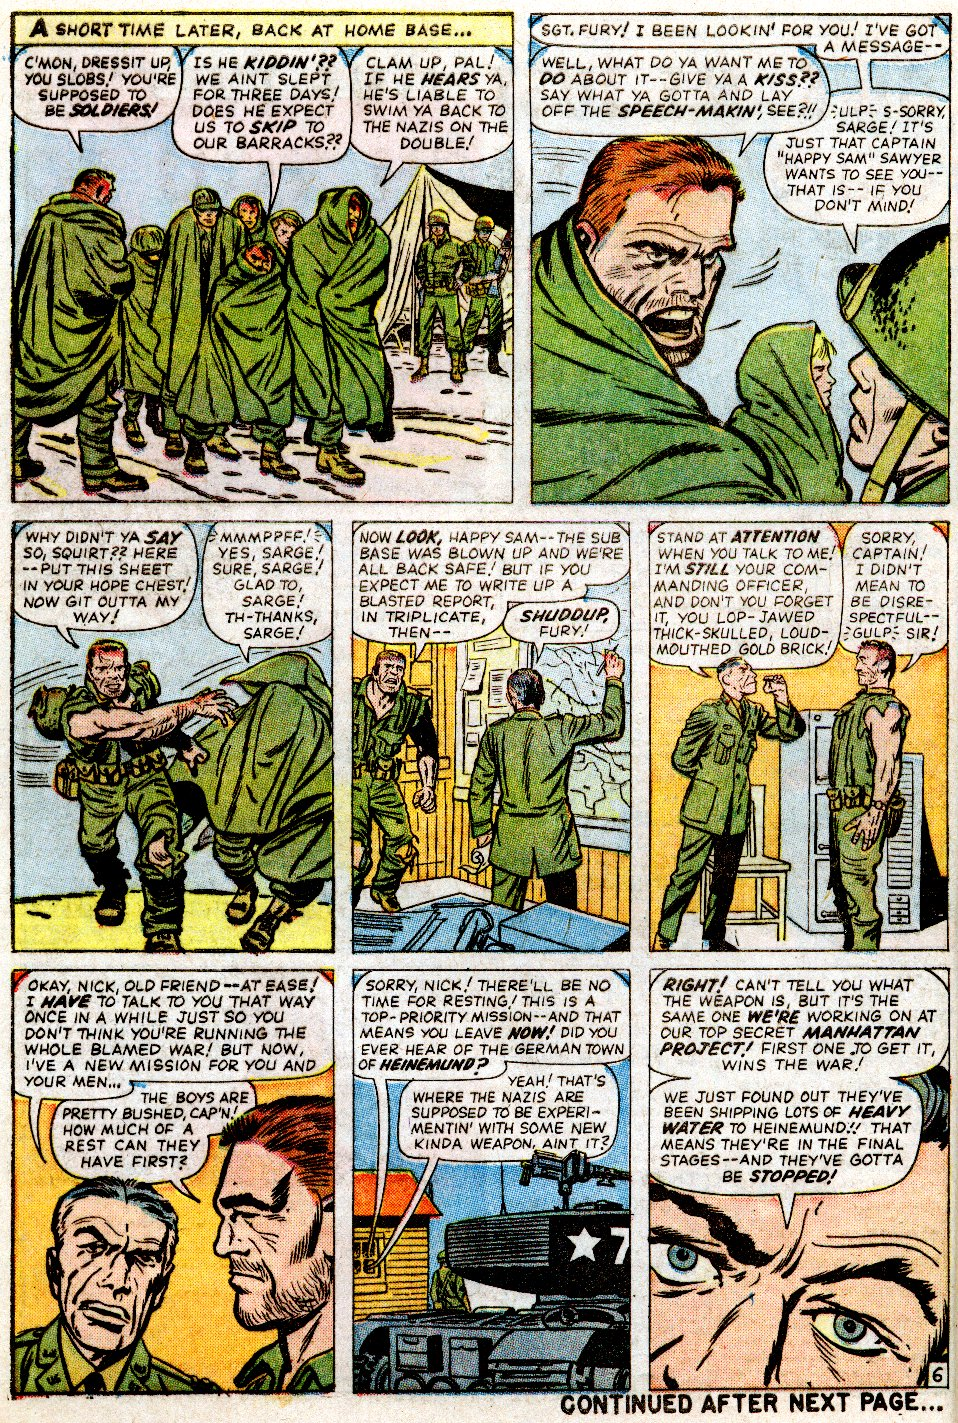 Read online Sgt. Fury comic -  Issue #2 - 8